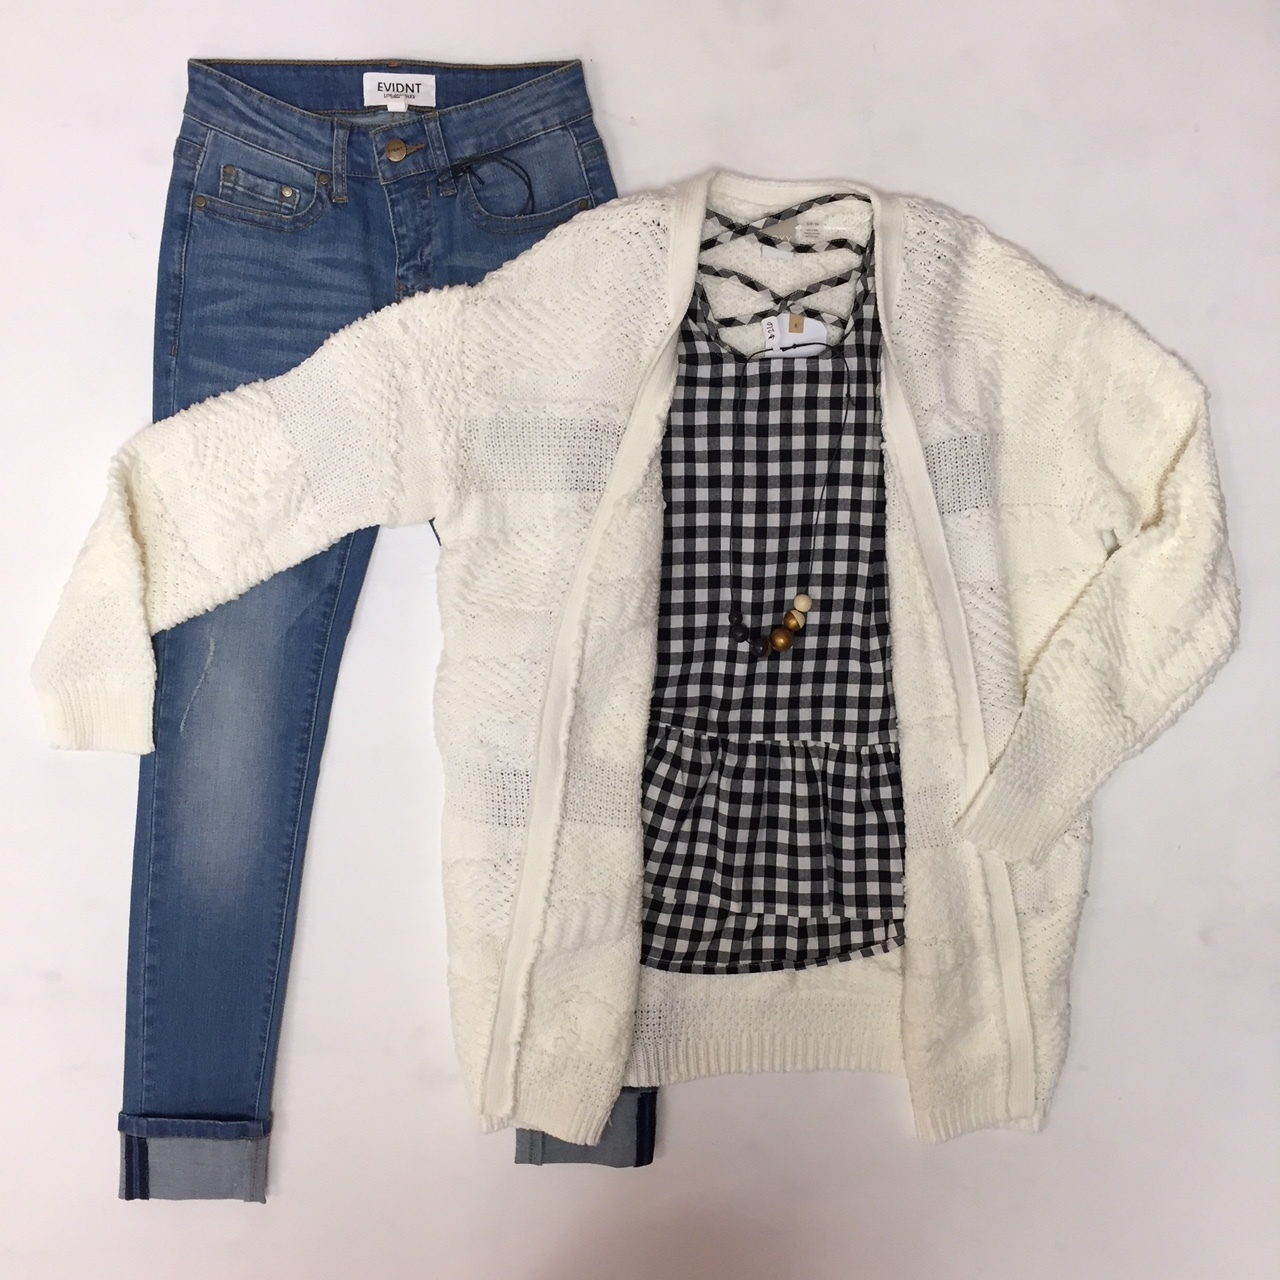 Evident Jeans $62, Gingham Tank Top $52, Roxy Cardigan $80, Belle Accessory $32